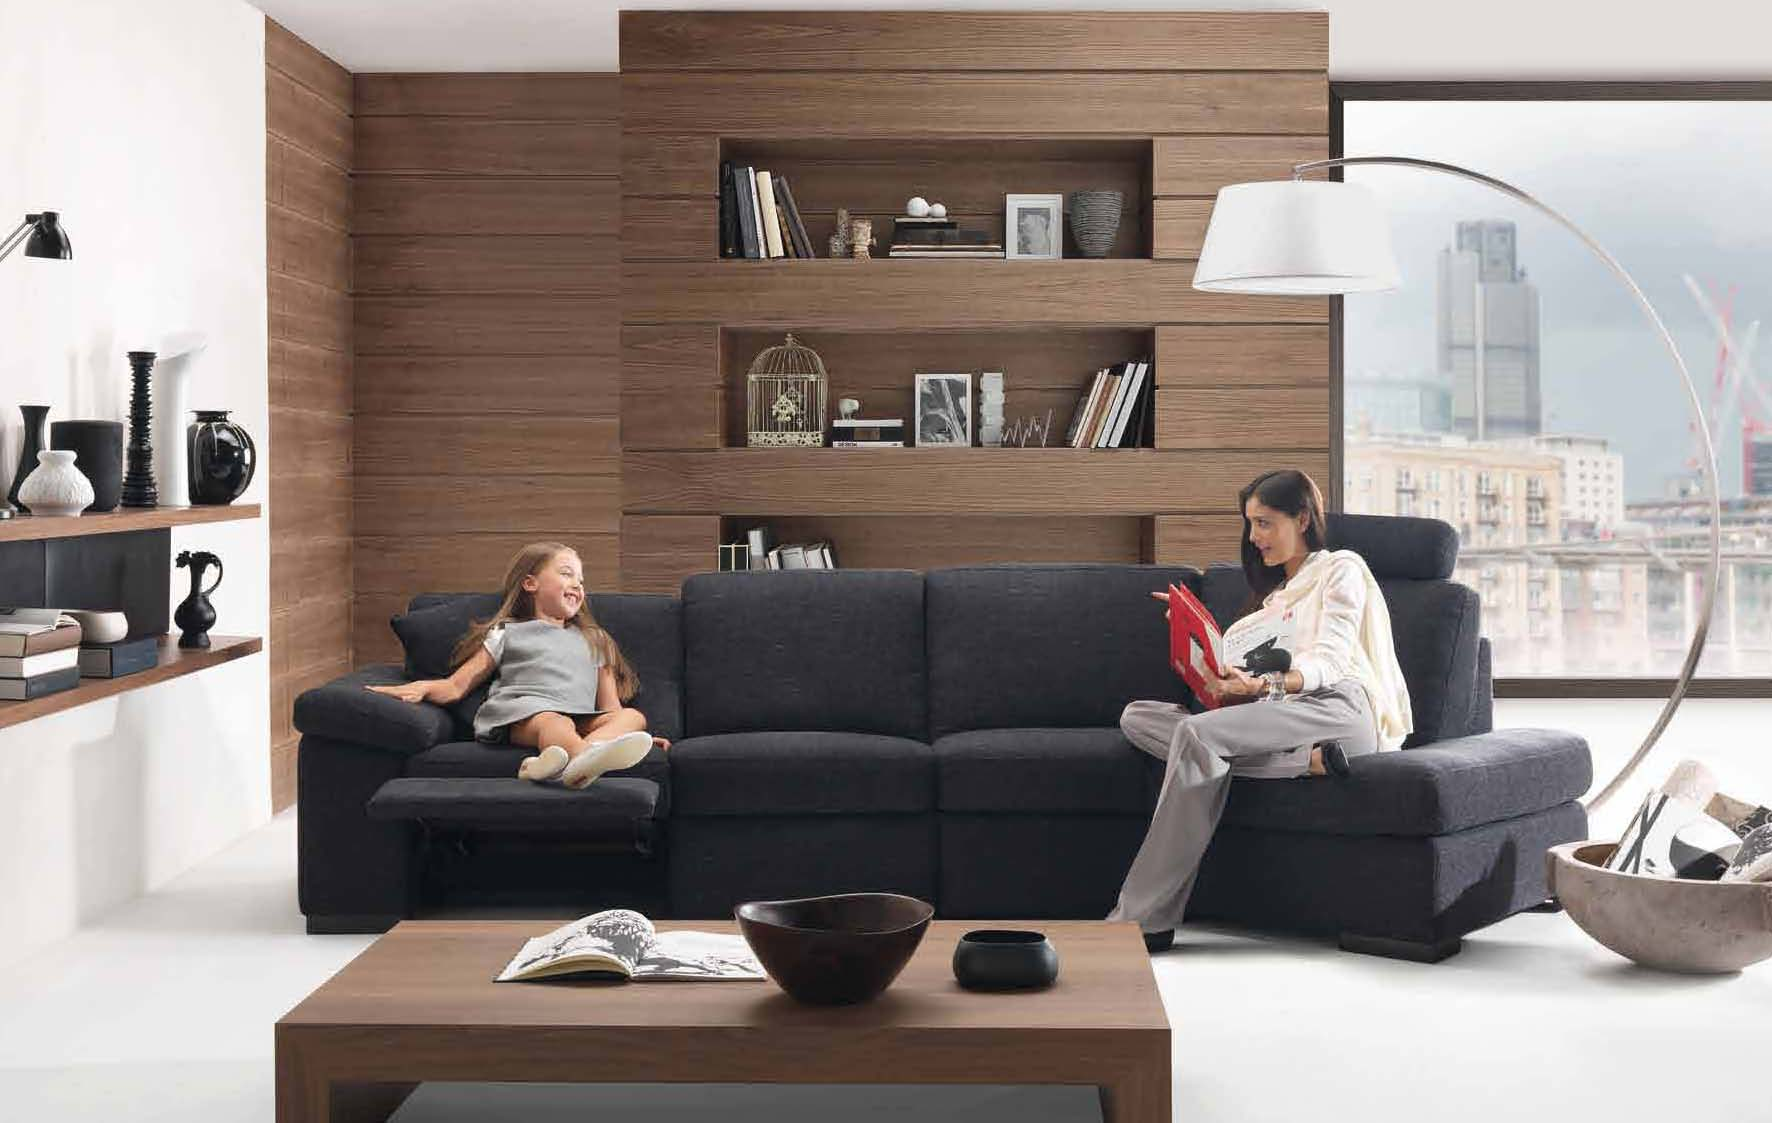 Living room styles 2010 by natuzzi for Living house